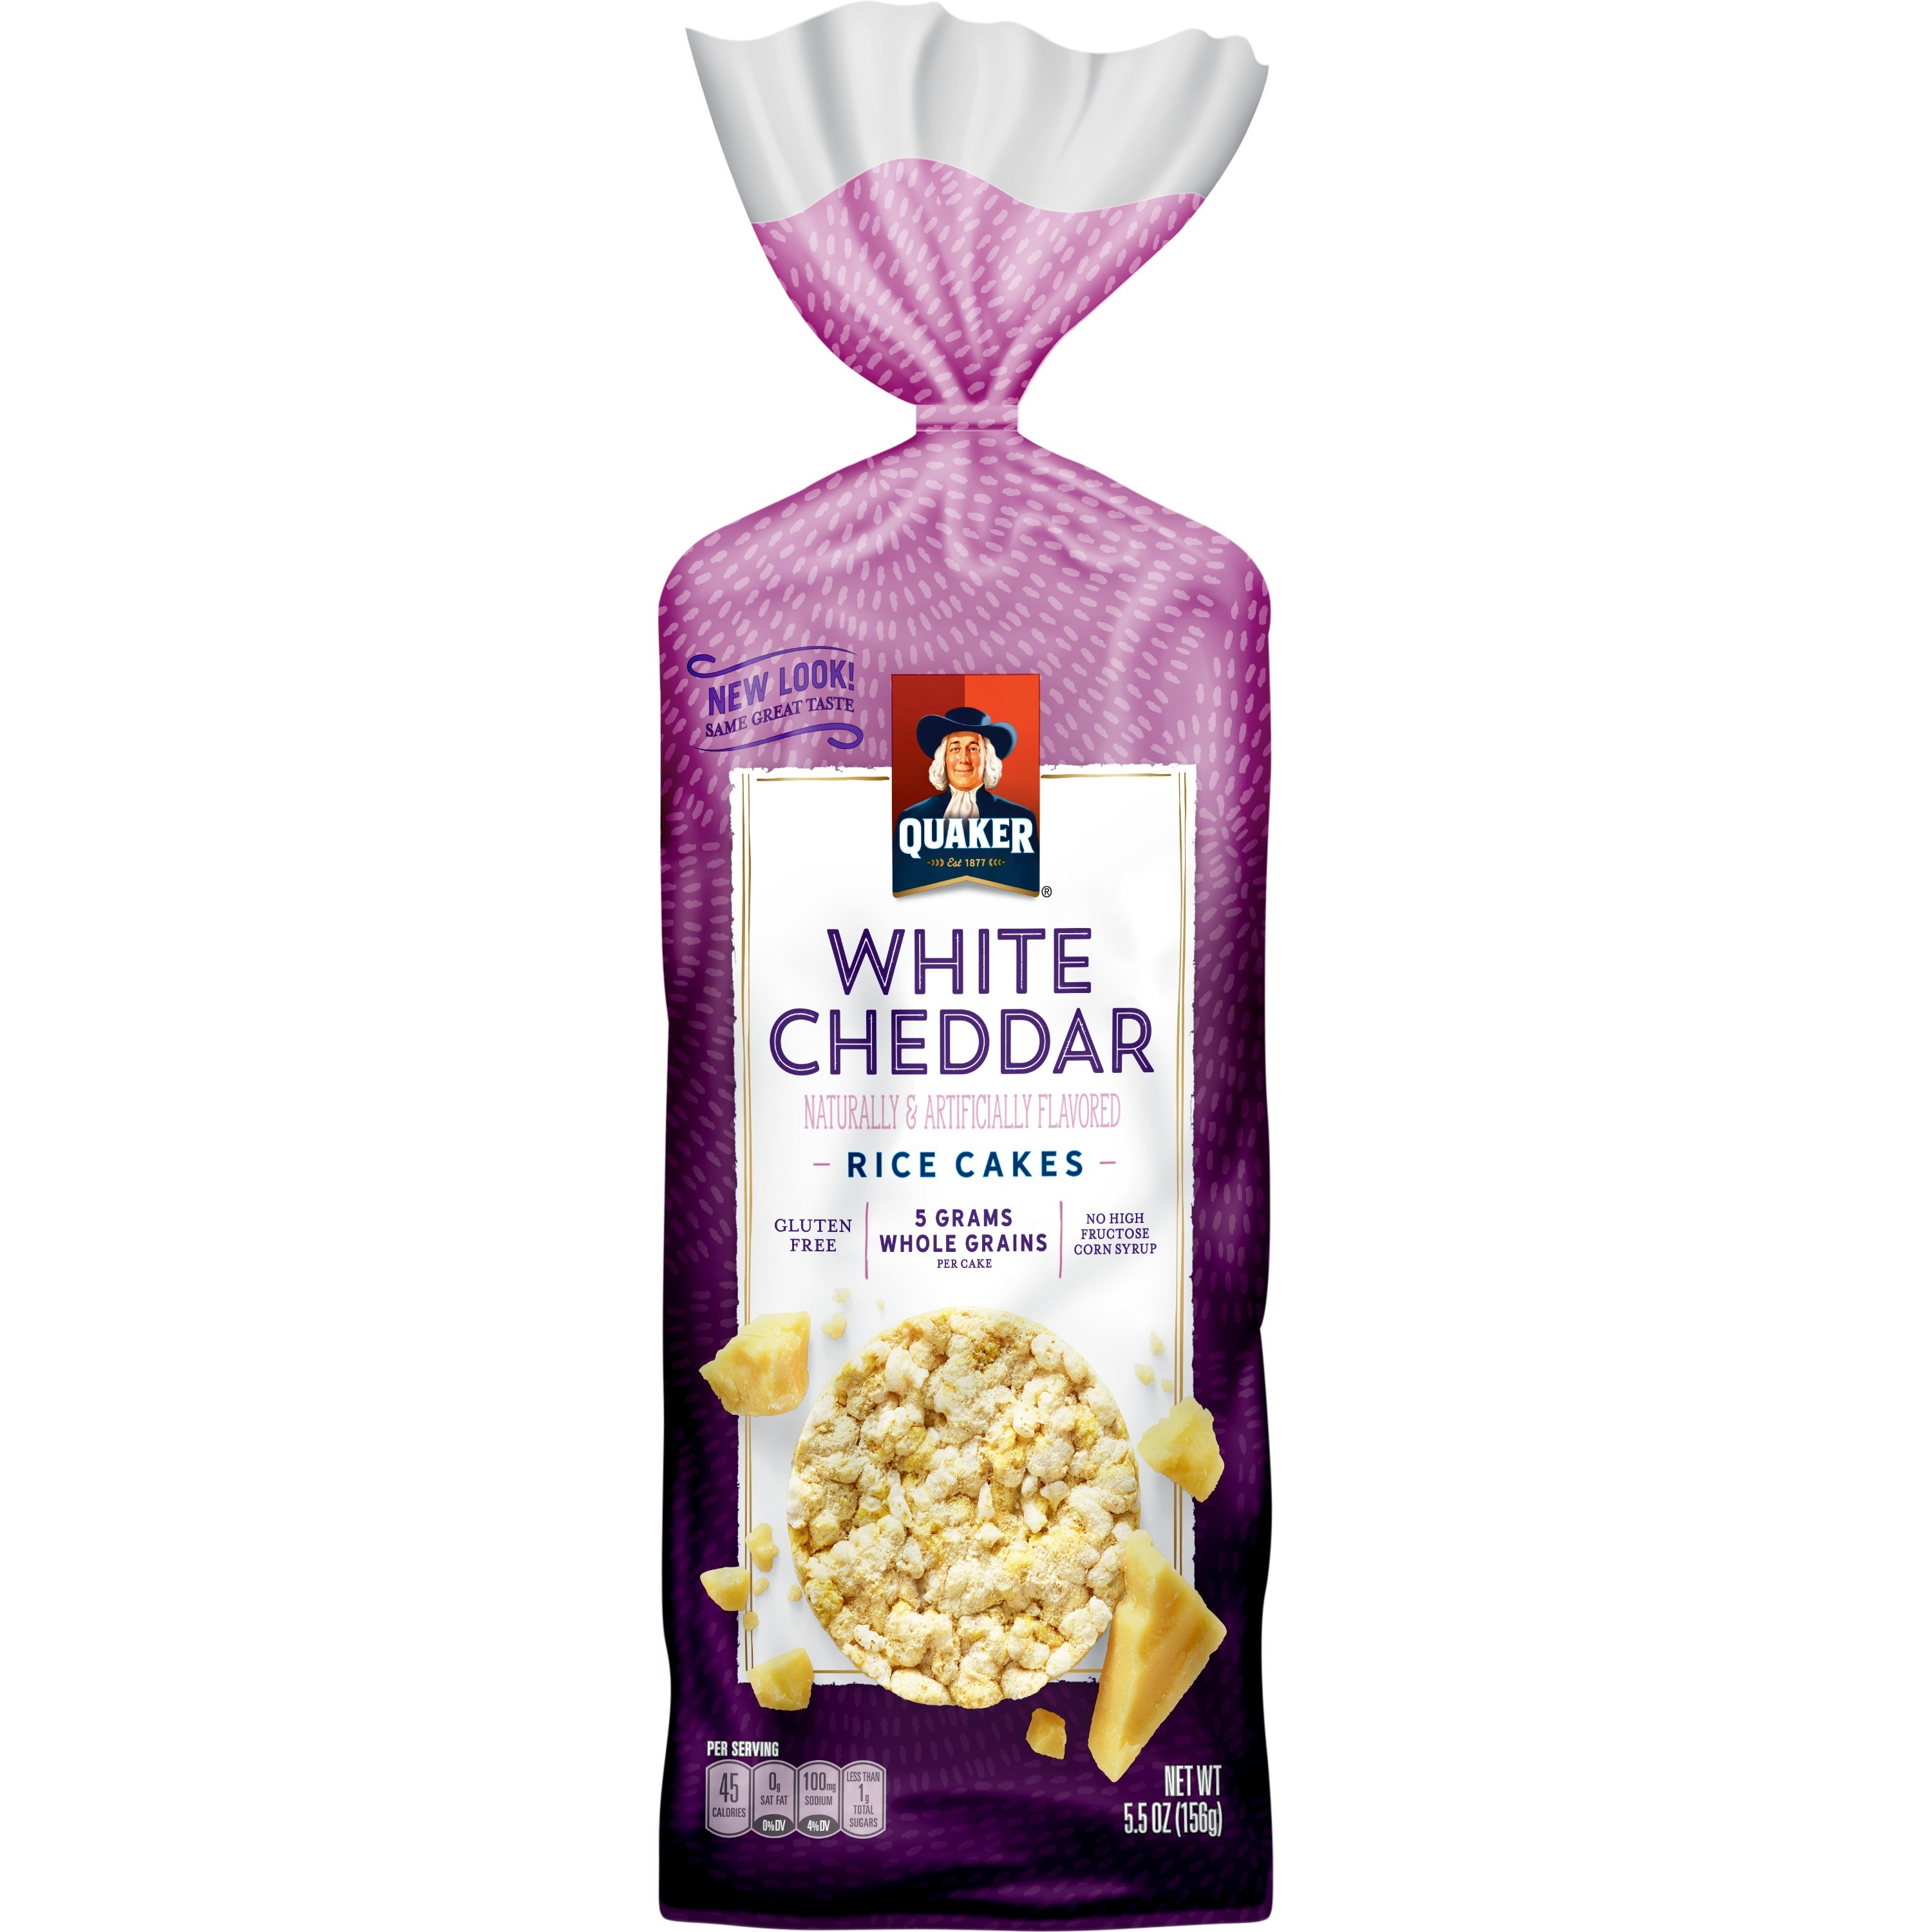 Quaker Rice Cakes, White Cheddar, 5.5 oz Bag